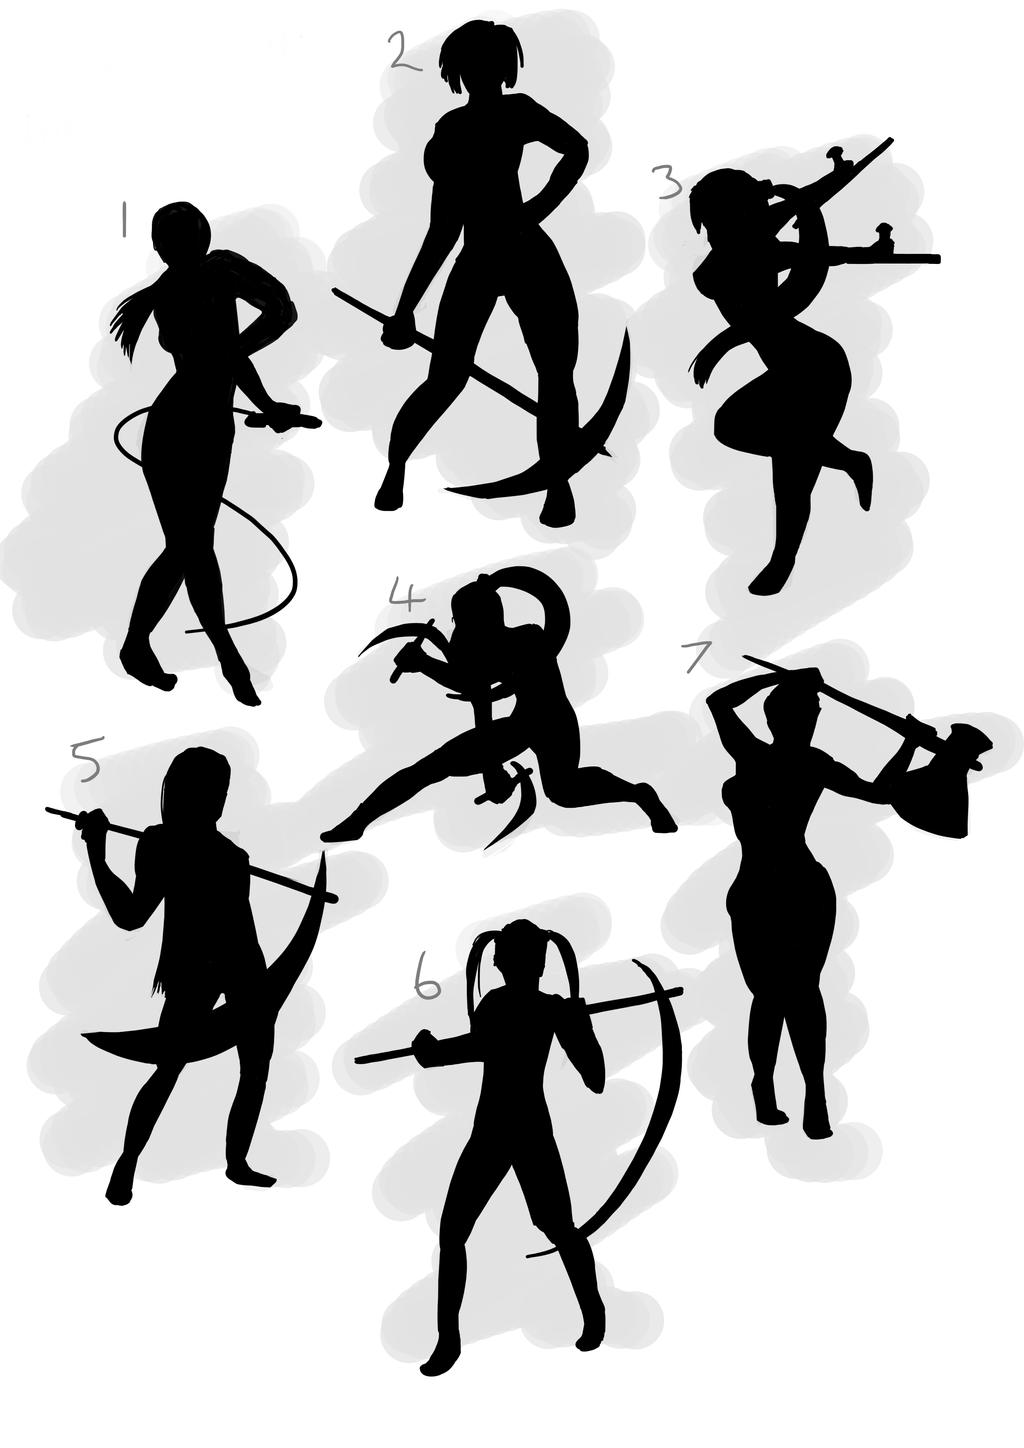 It's just a photo of Remarkable Disney Character Silhouettes